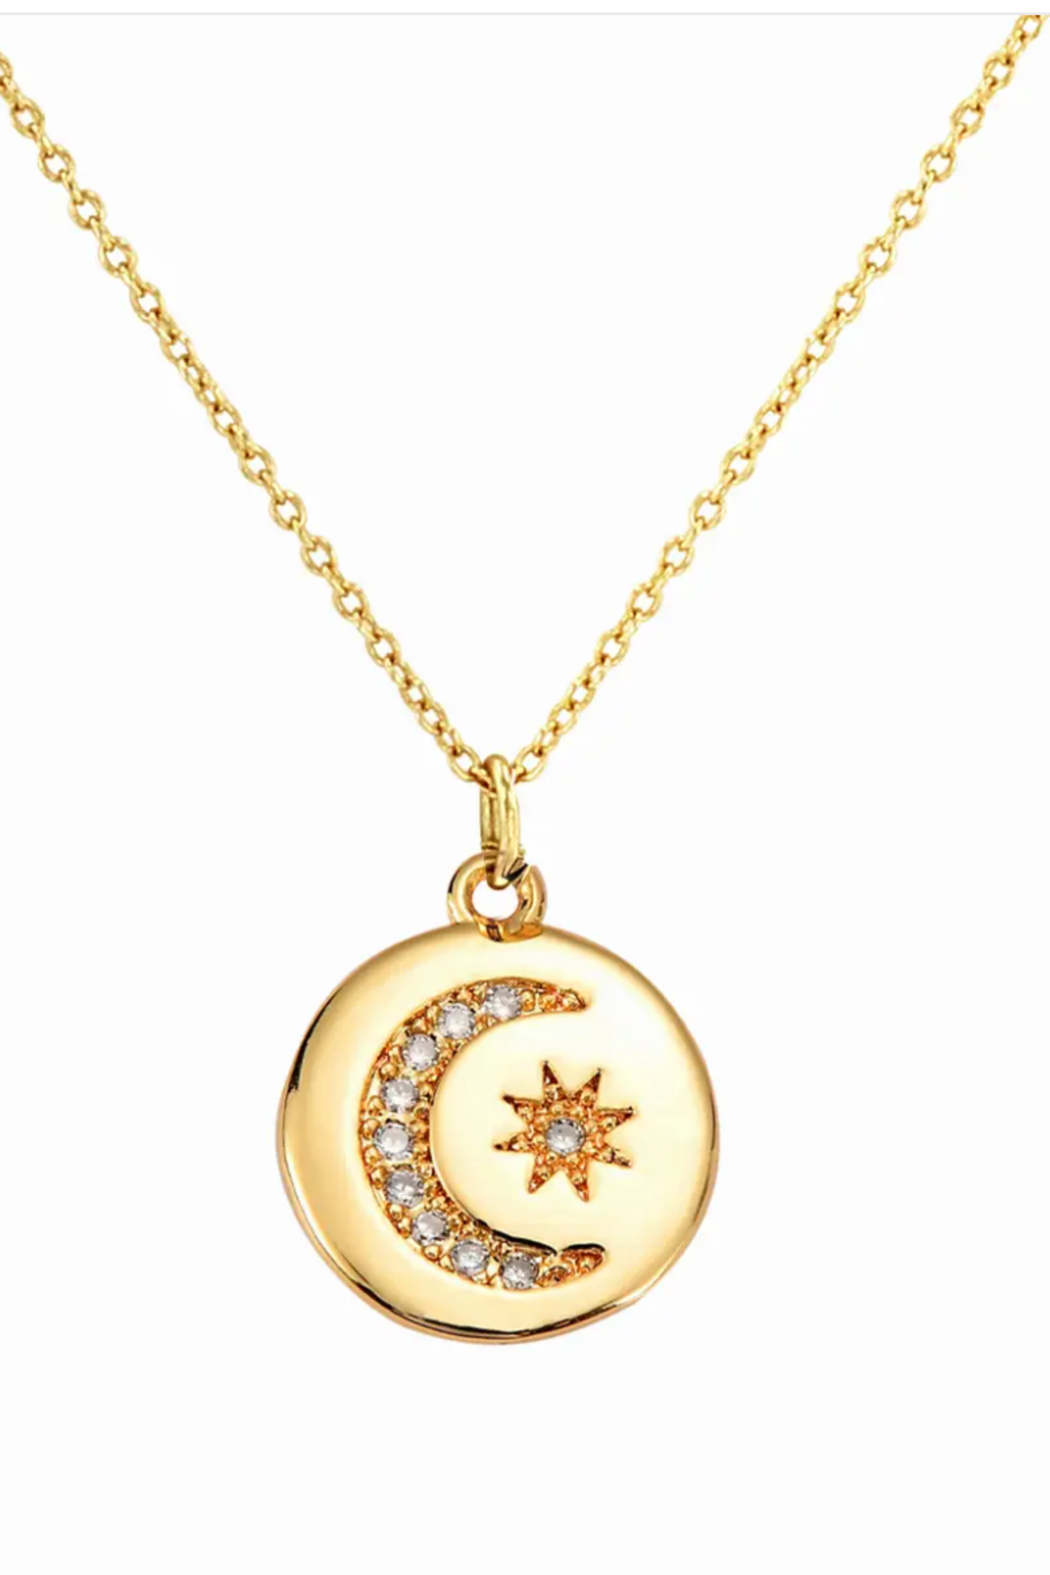 Kindred Row Moon and Stars Necklace - Main Image